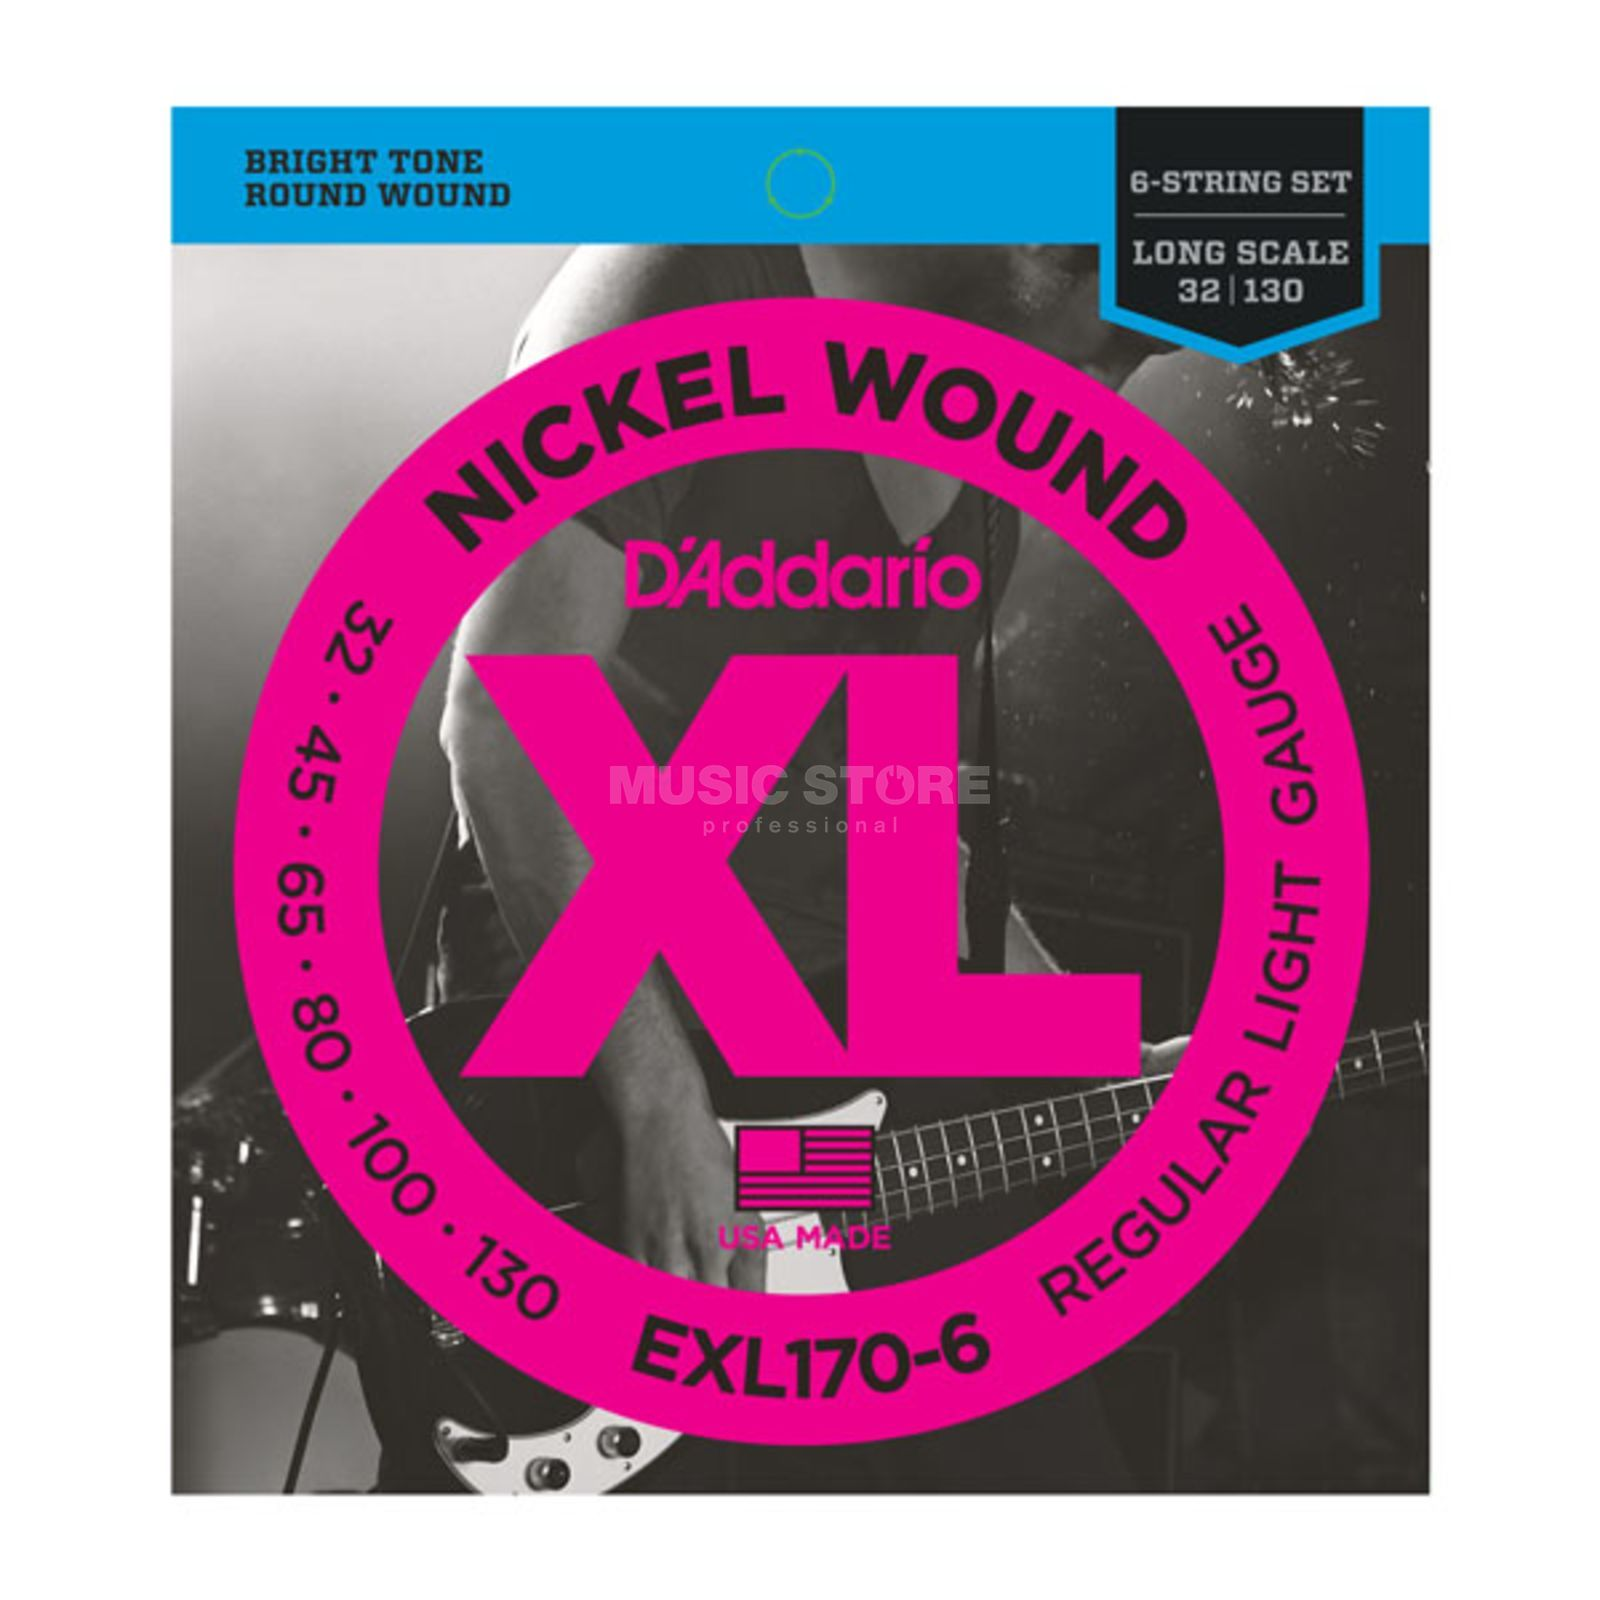 D'Addario Bass Strings XL Nickel 32-130 32-45-65-80-100-130, EXL170-6 Product Image